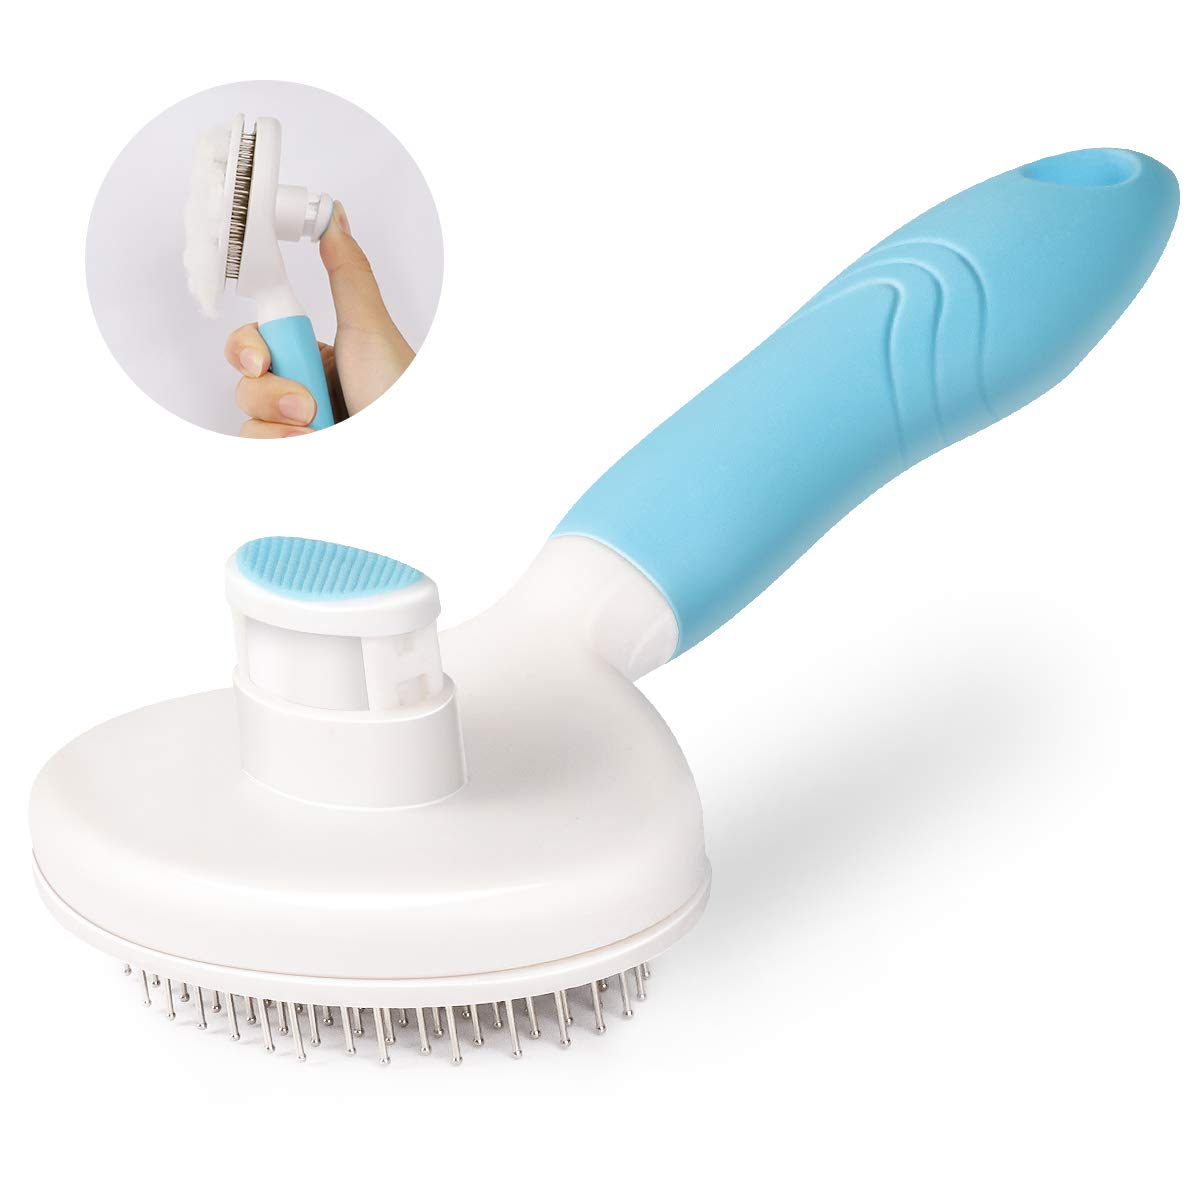 MENNYO Dog Brush, Cat Brush, Self Cleaning Slicker Brush for Shedding, Professional Pet Grooming Comb - Removes 95% of Dead Hairs and Knots, Eliminates Tangles Furminator for Long/Short Hair